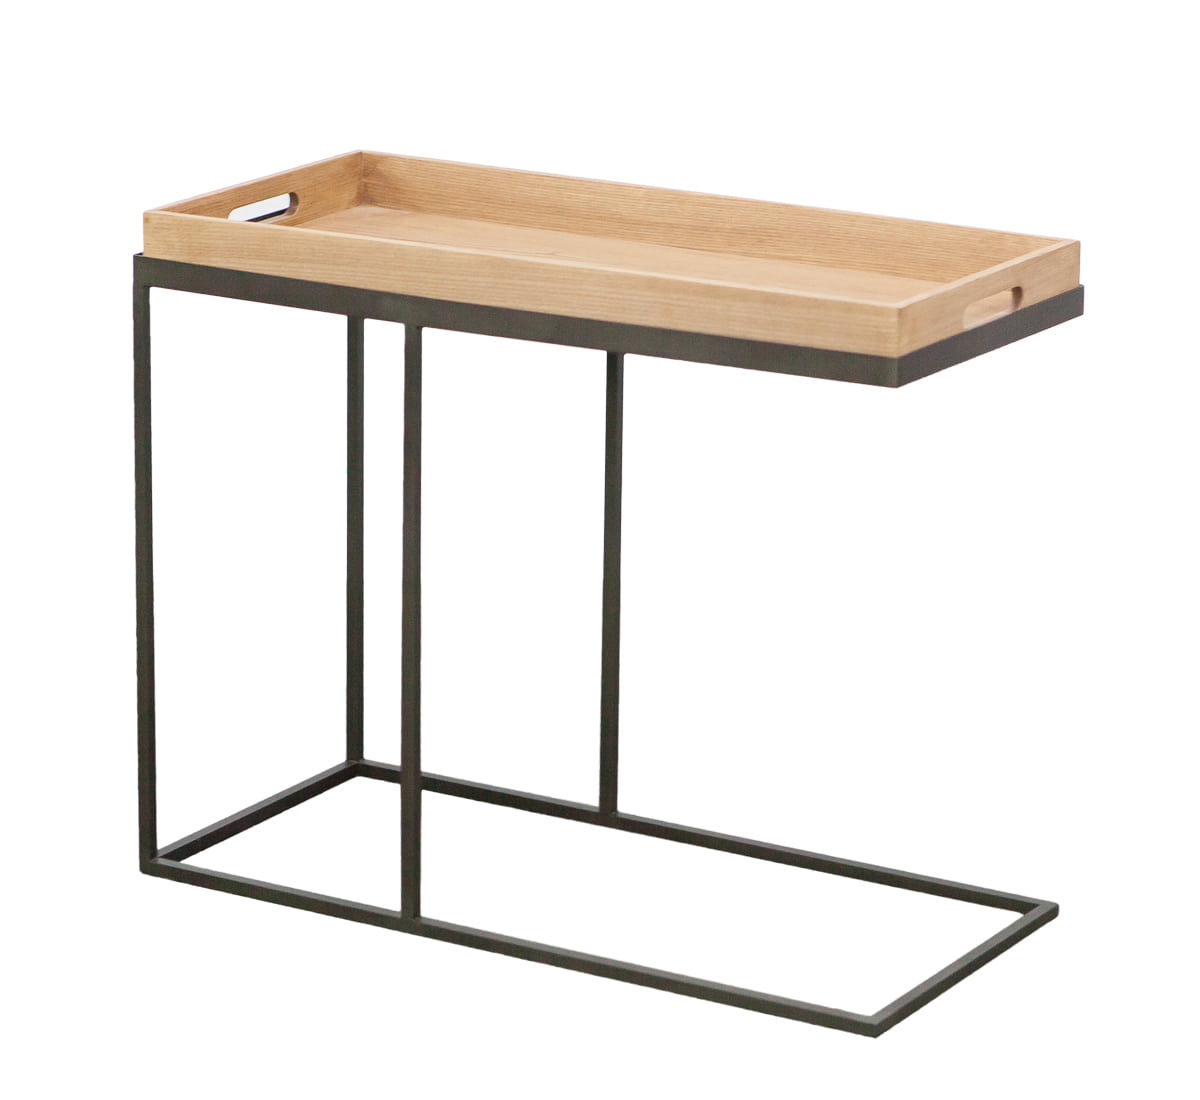 Zacc collection by SEDEC Wood Tray Table 우드 트레이 테이블(직사각-B)